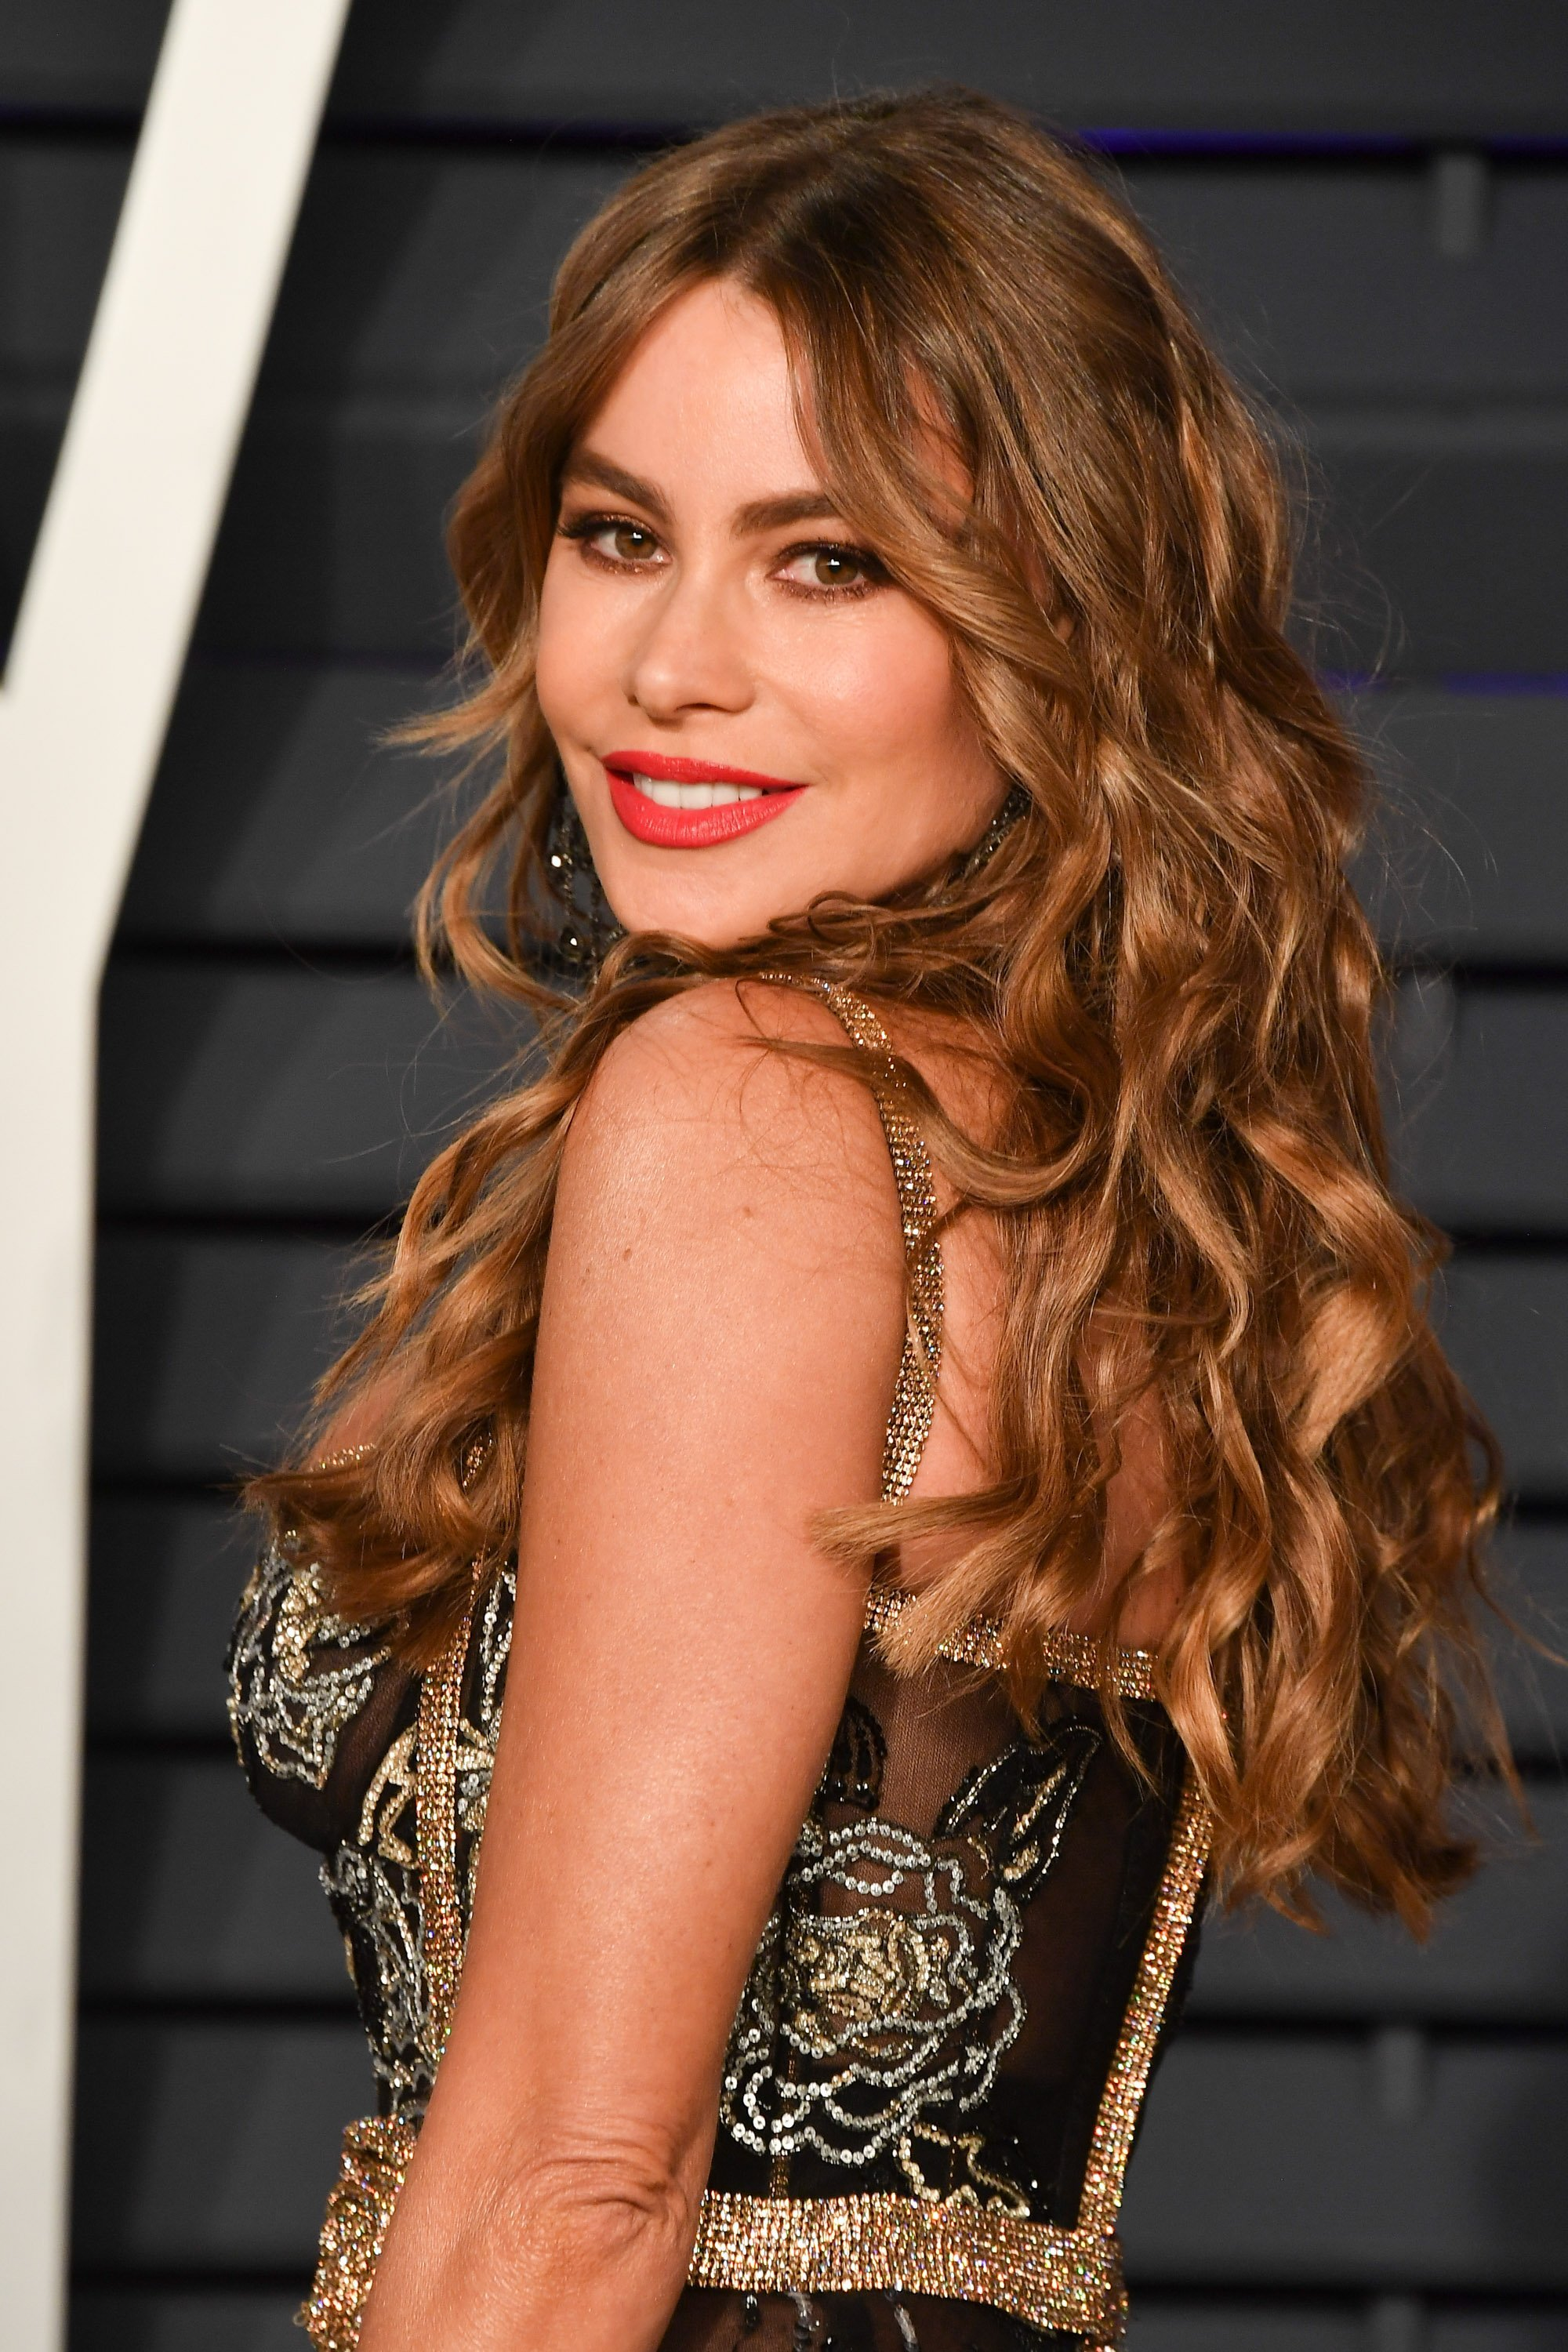 Sofia Vergara attends the 2019 Vanity Fair Oscar Party on February 24, 2019, in Beverly Hills, California. | Source: Getty Images.